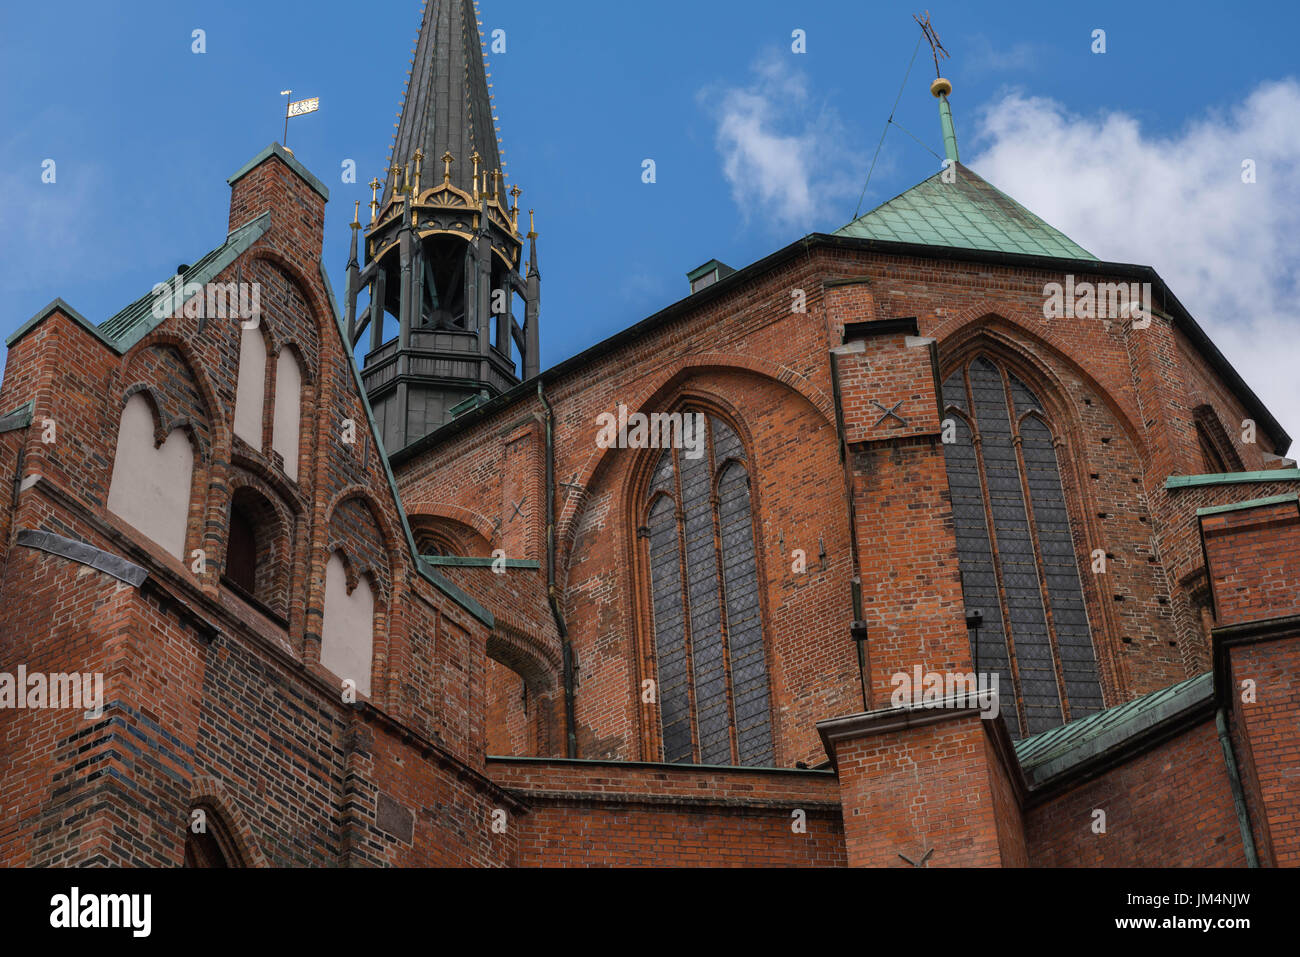 St. Mary´s Church, Hanseatic town of Lubeck, UNESCO World Heritage, Baltic Sea, Schleswig-Holstein, Germany, Europe - Stock Image